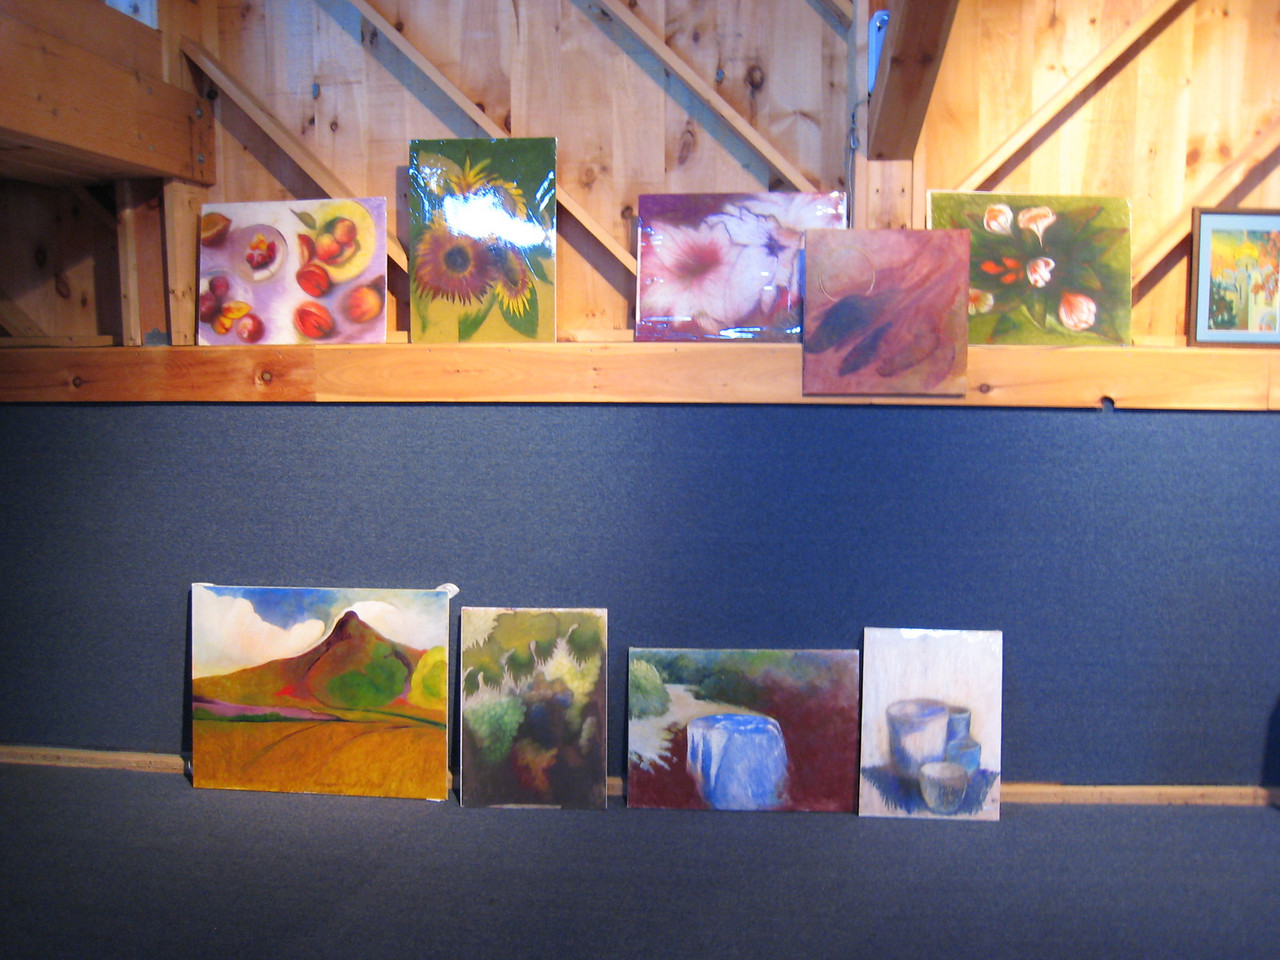 A taste of some of the art to be auctioned.